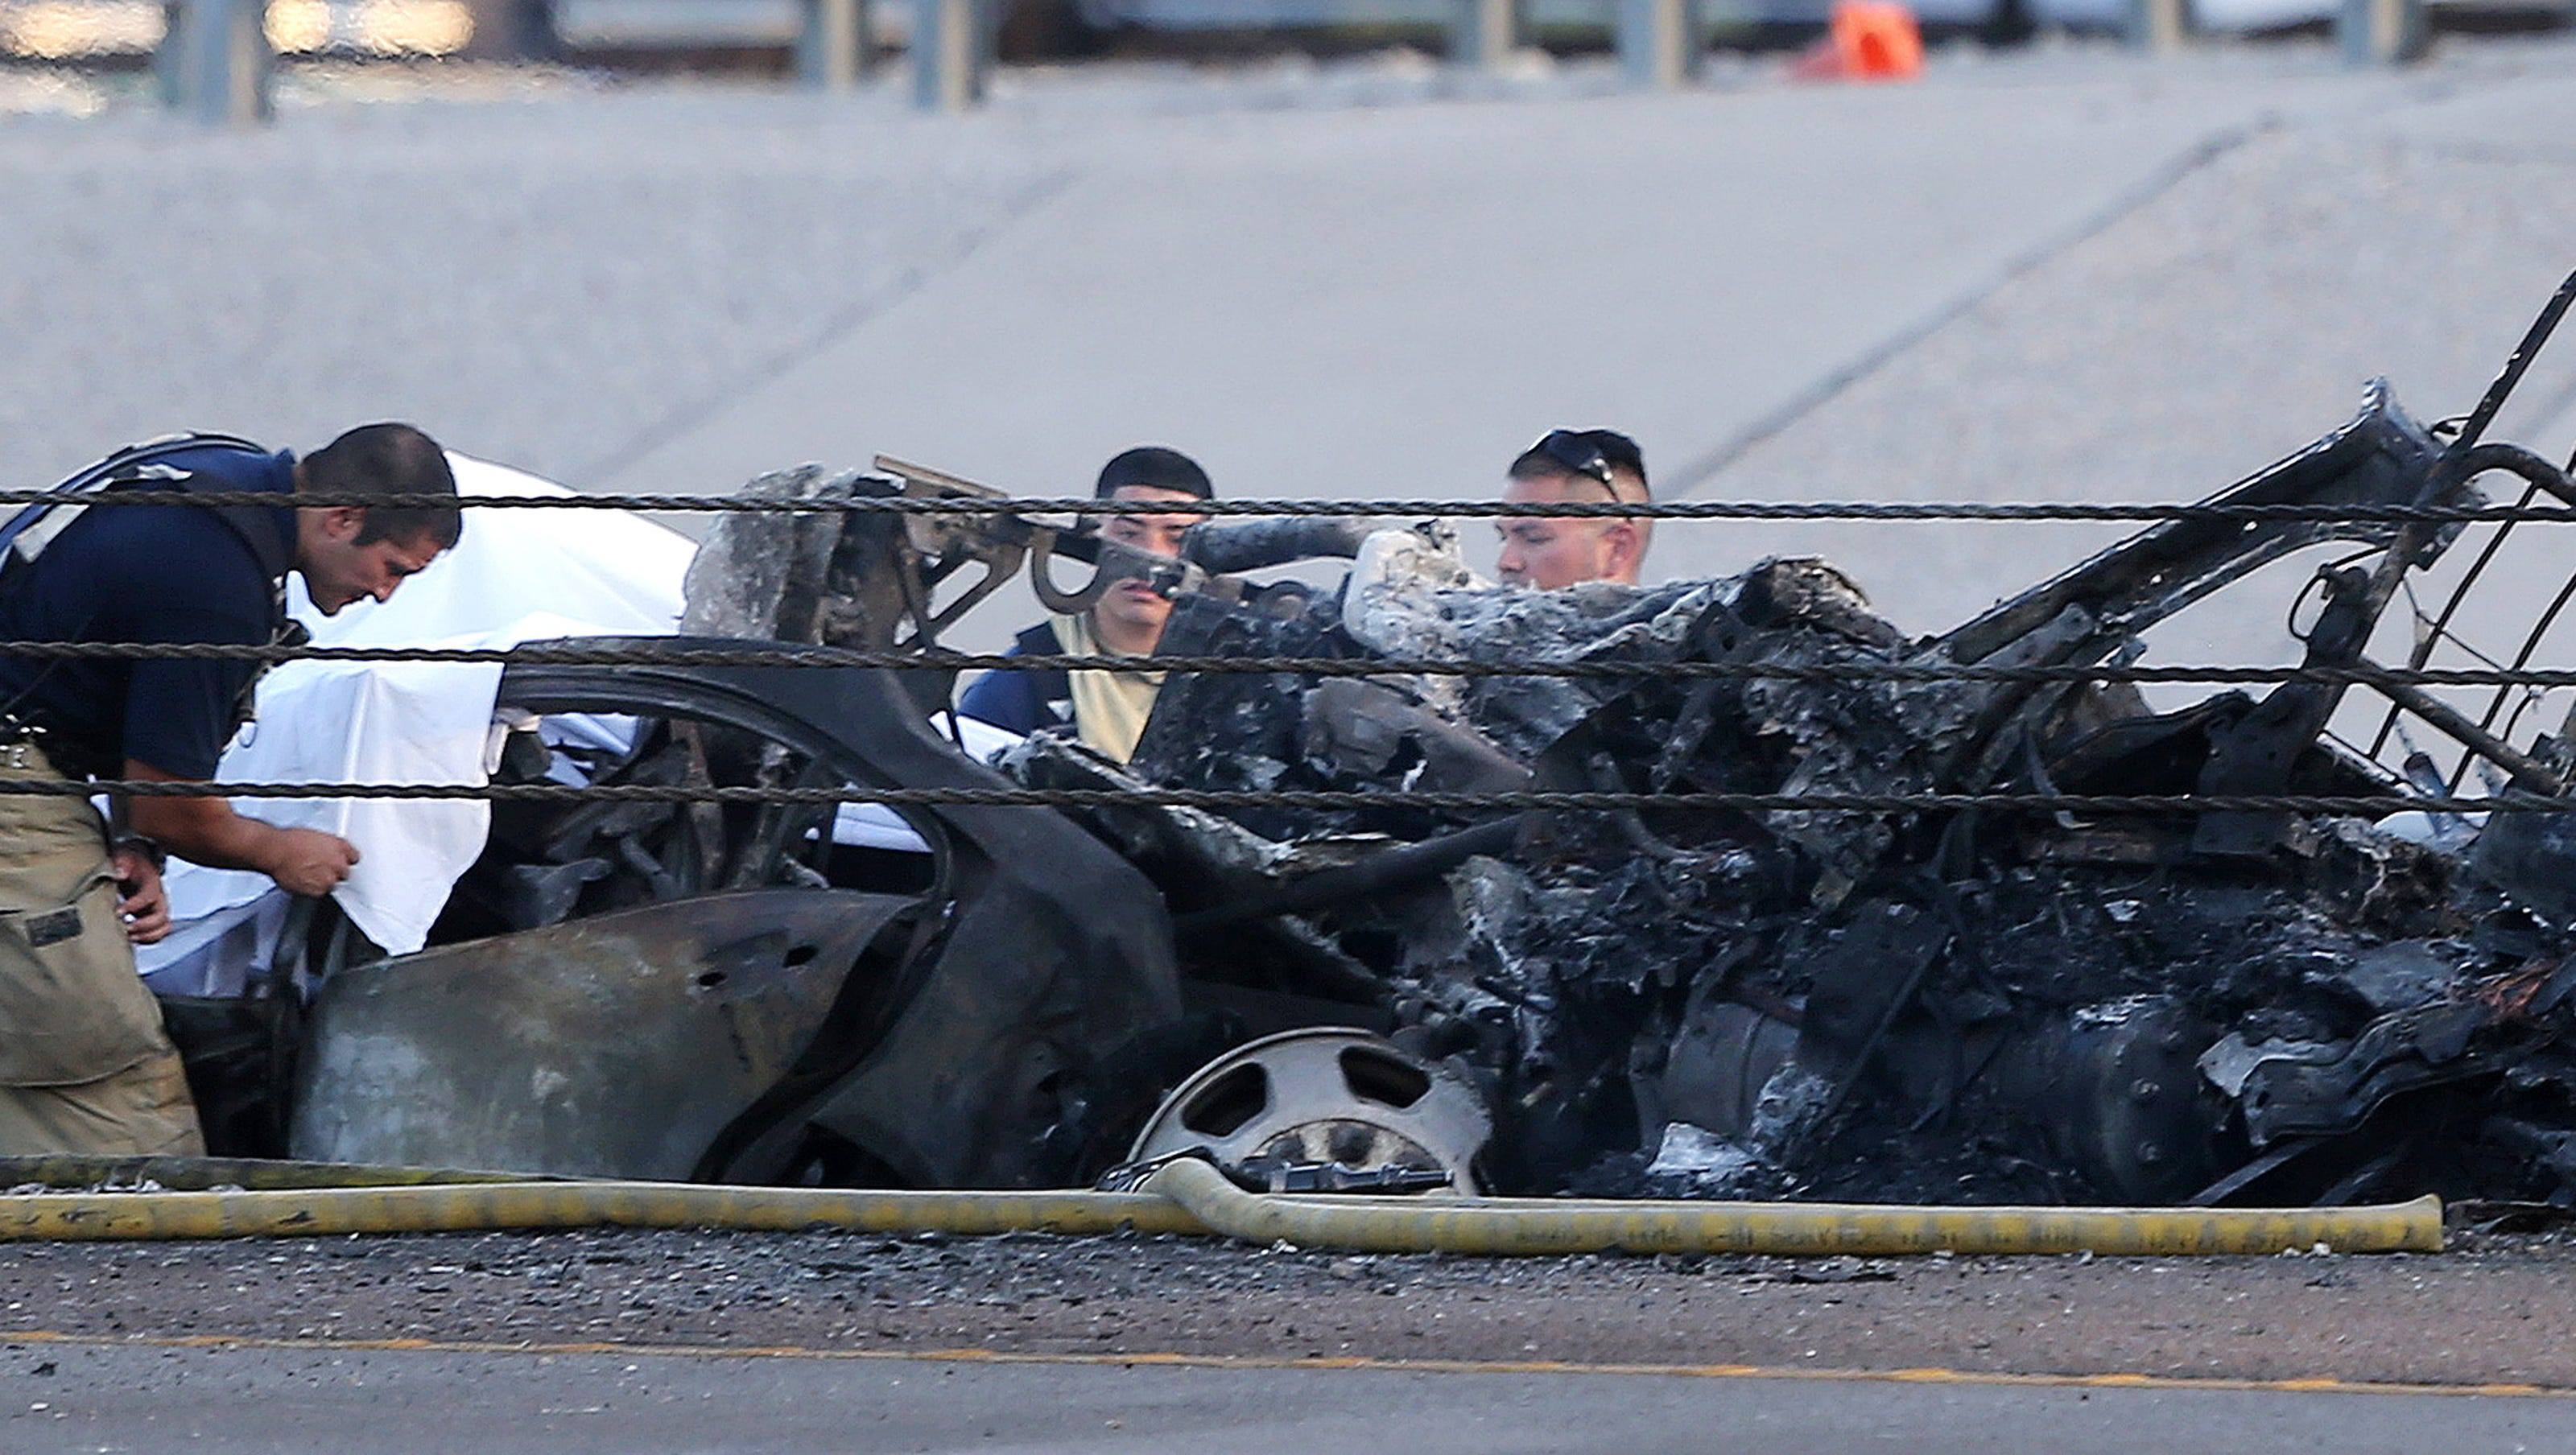 Women named in fatal I 10 crash in West El Paso